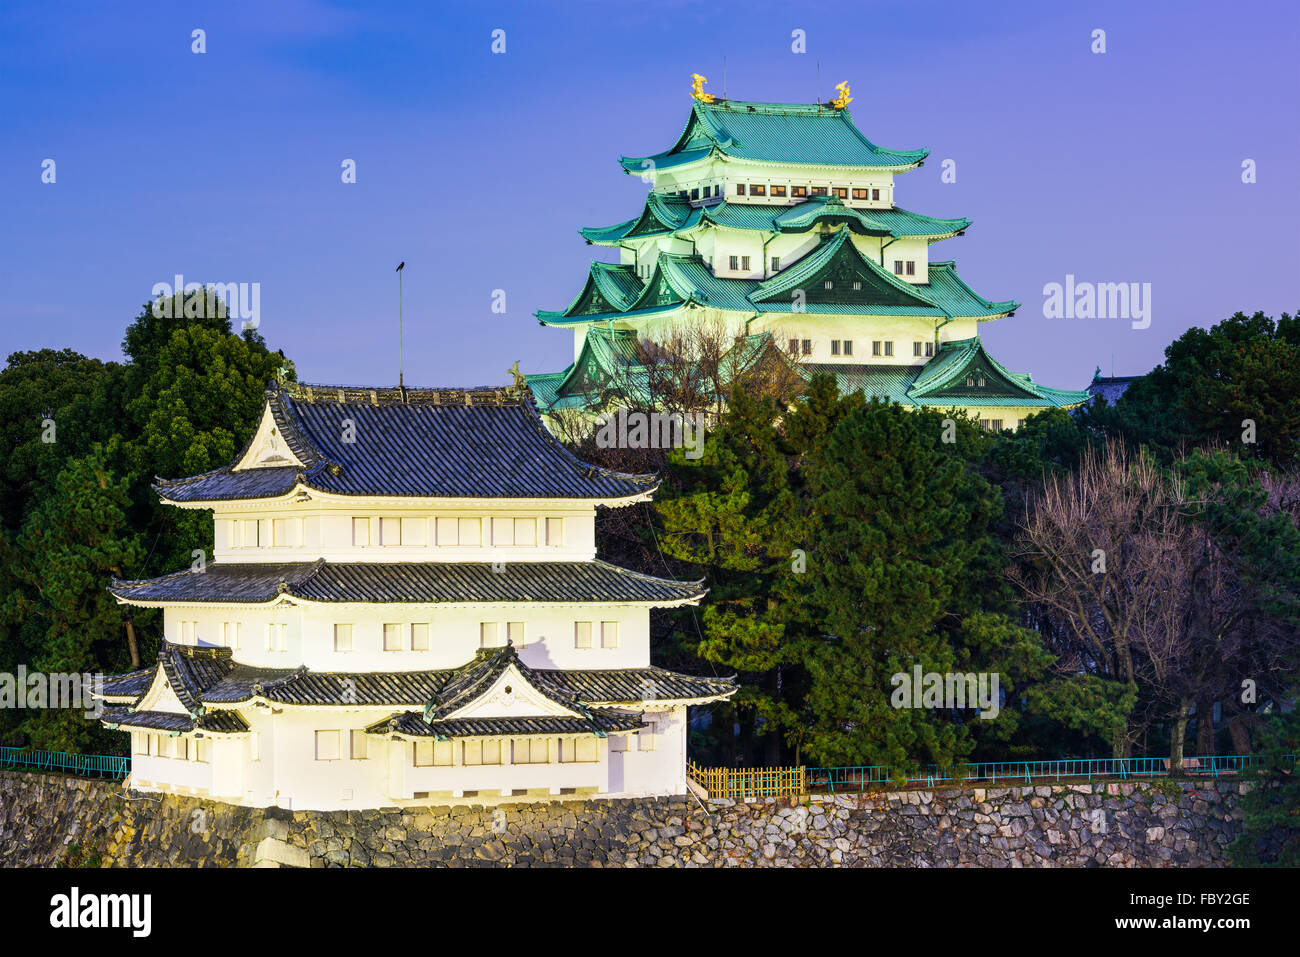 Nagoya, Japan castle towers. - Stock Image